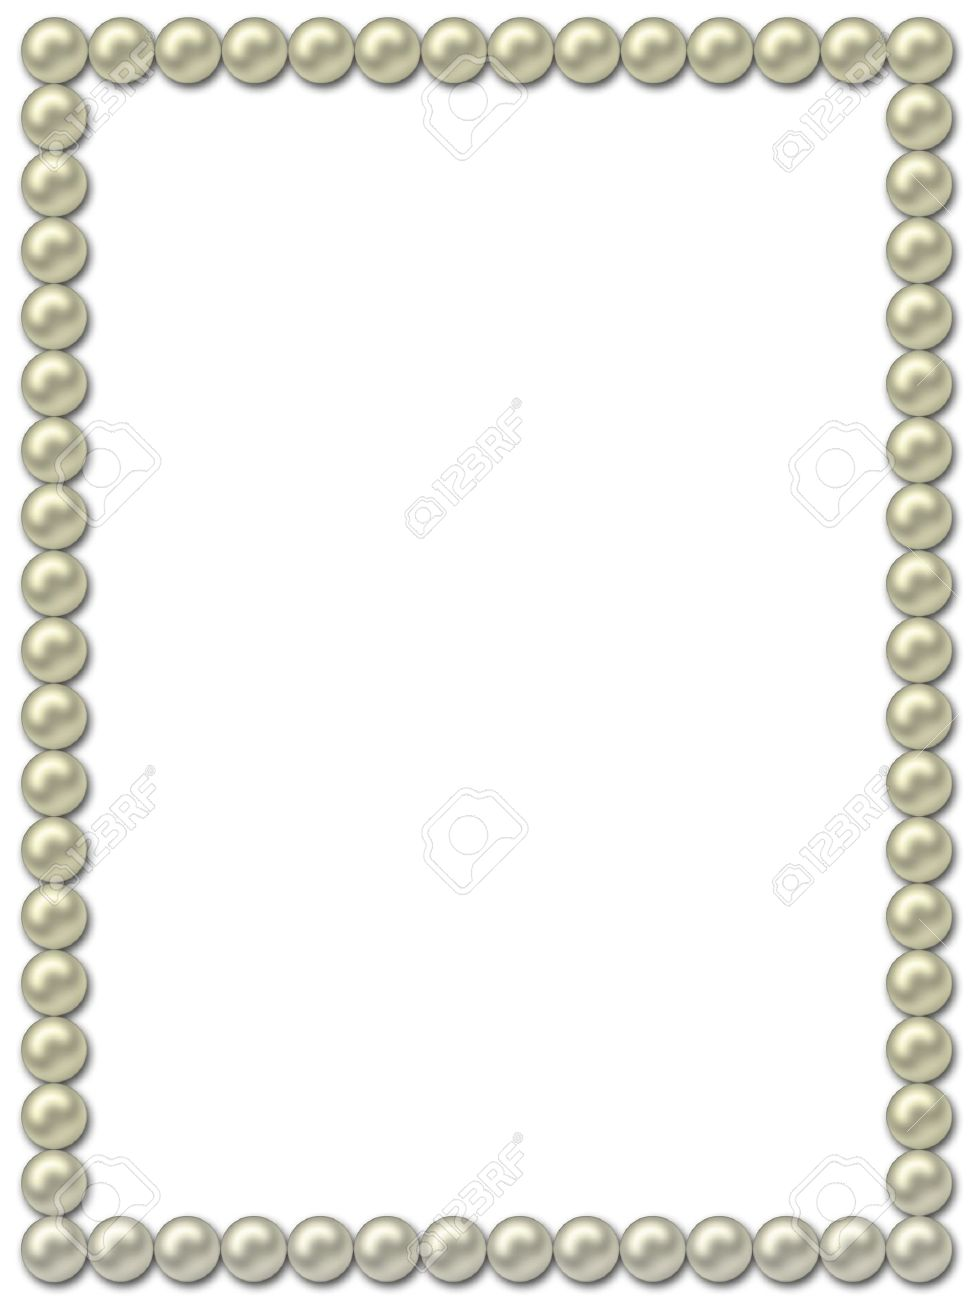 pearl frame necklace stock photo 4021546